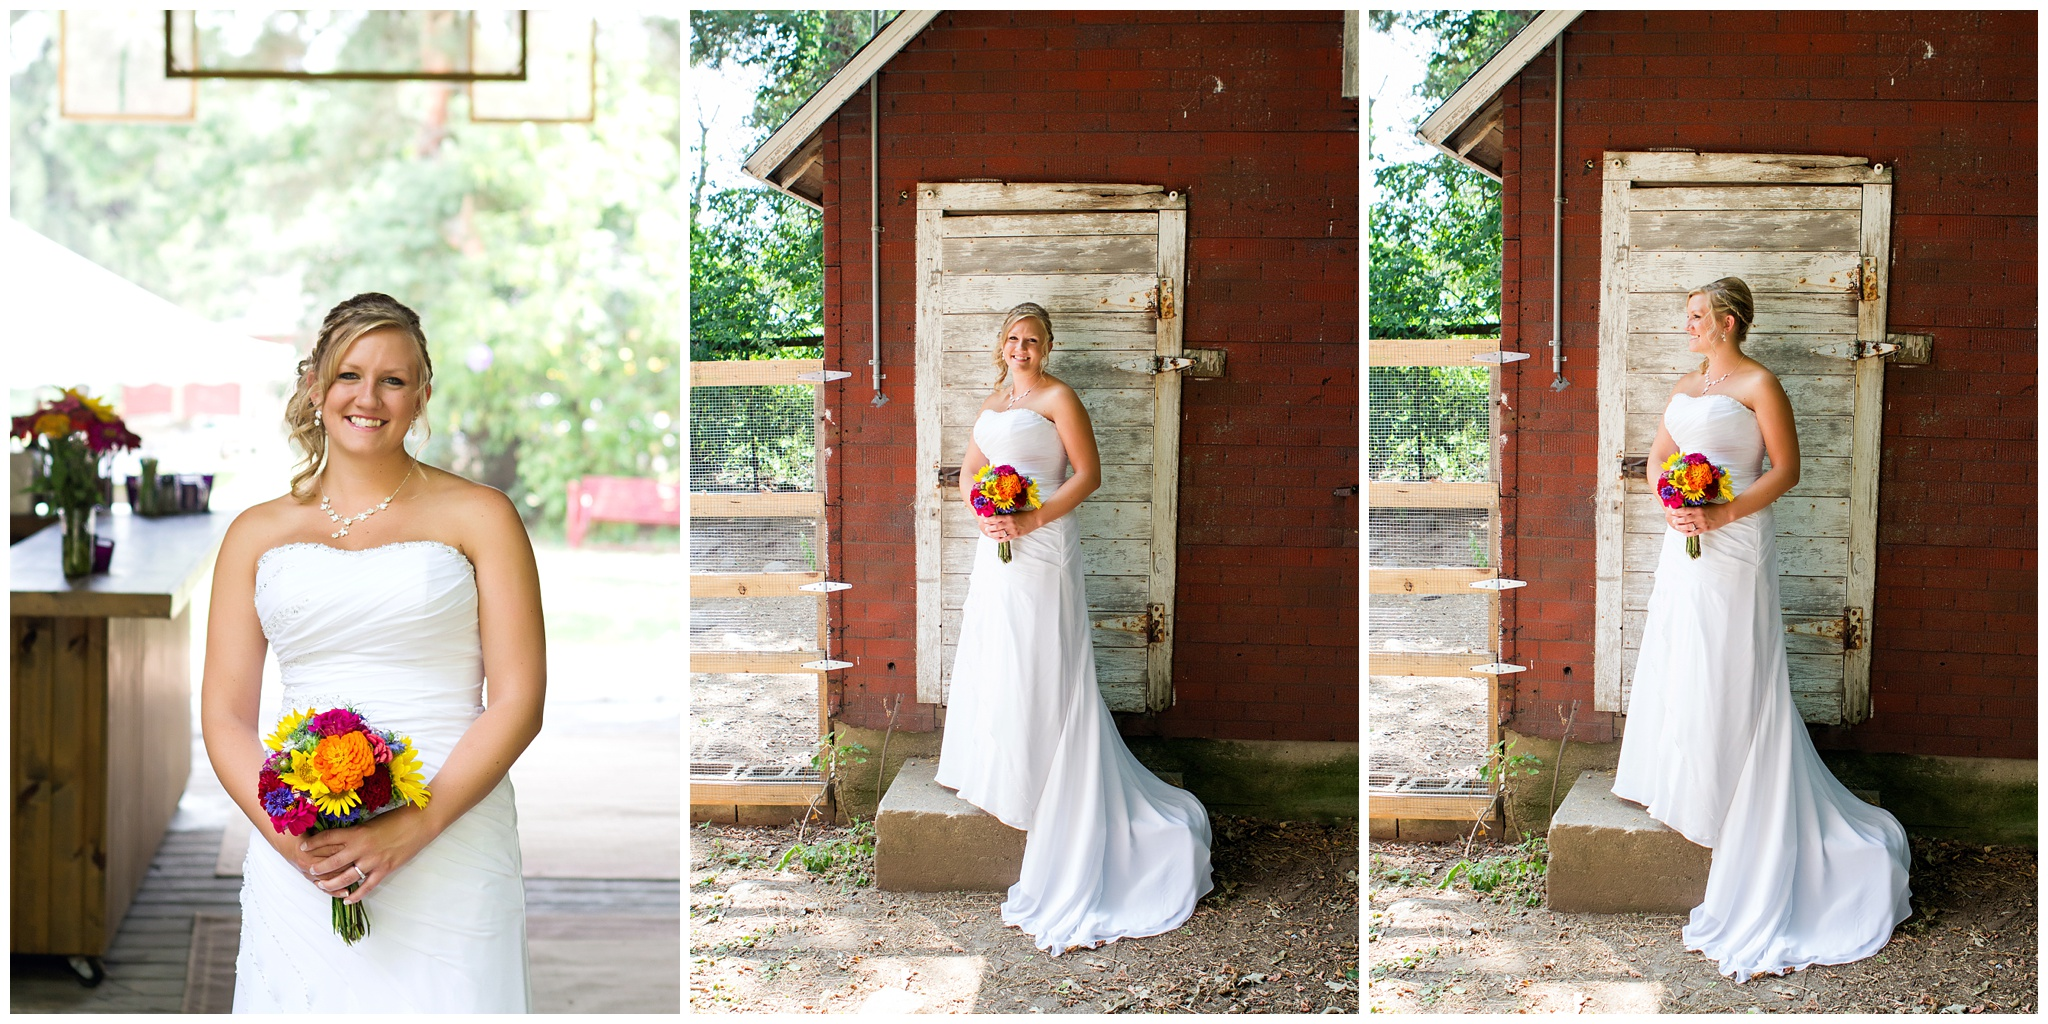 Cj Photography | Wisconsin Wedding Photographers